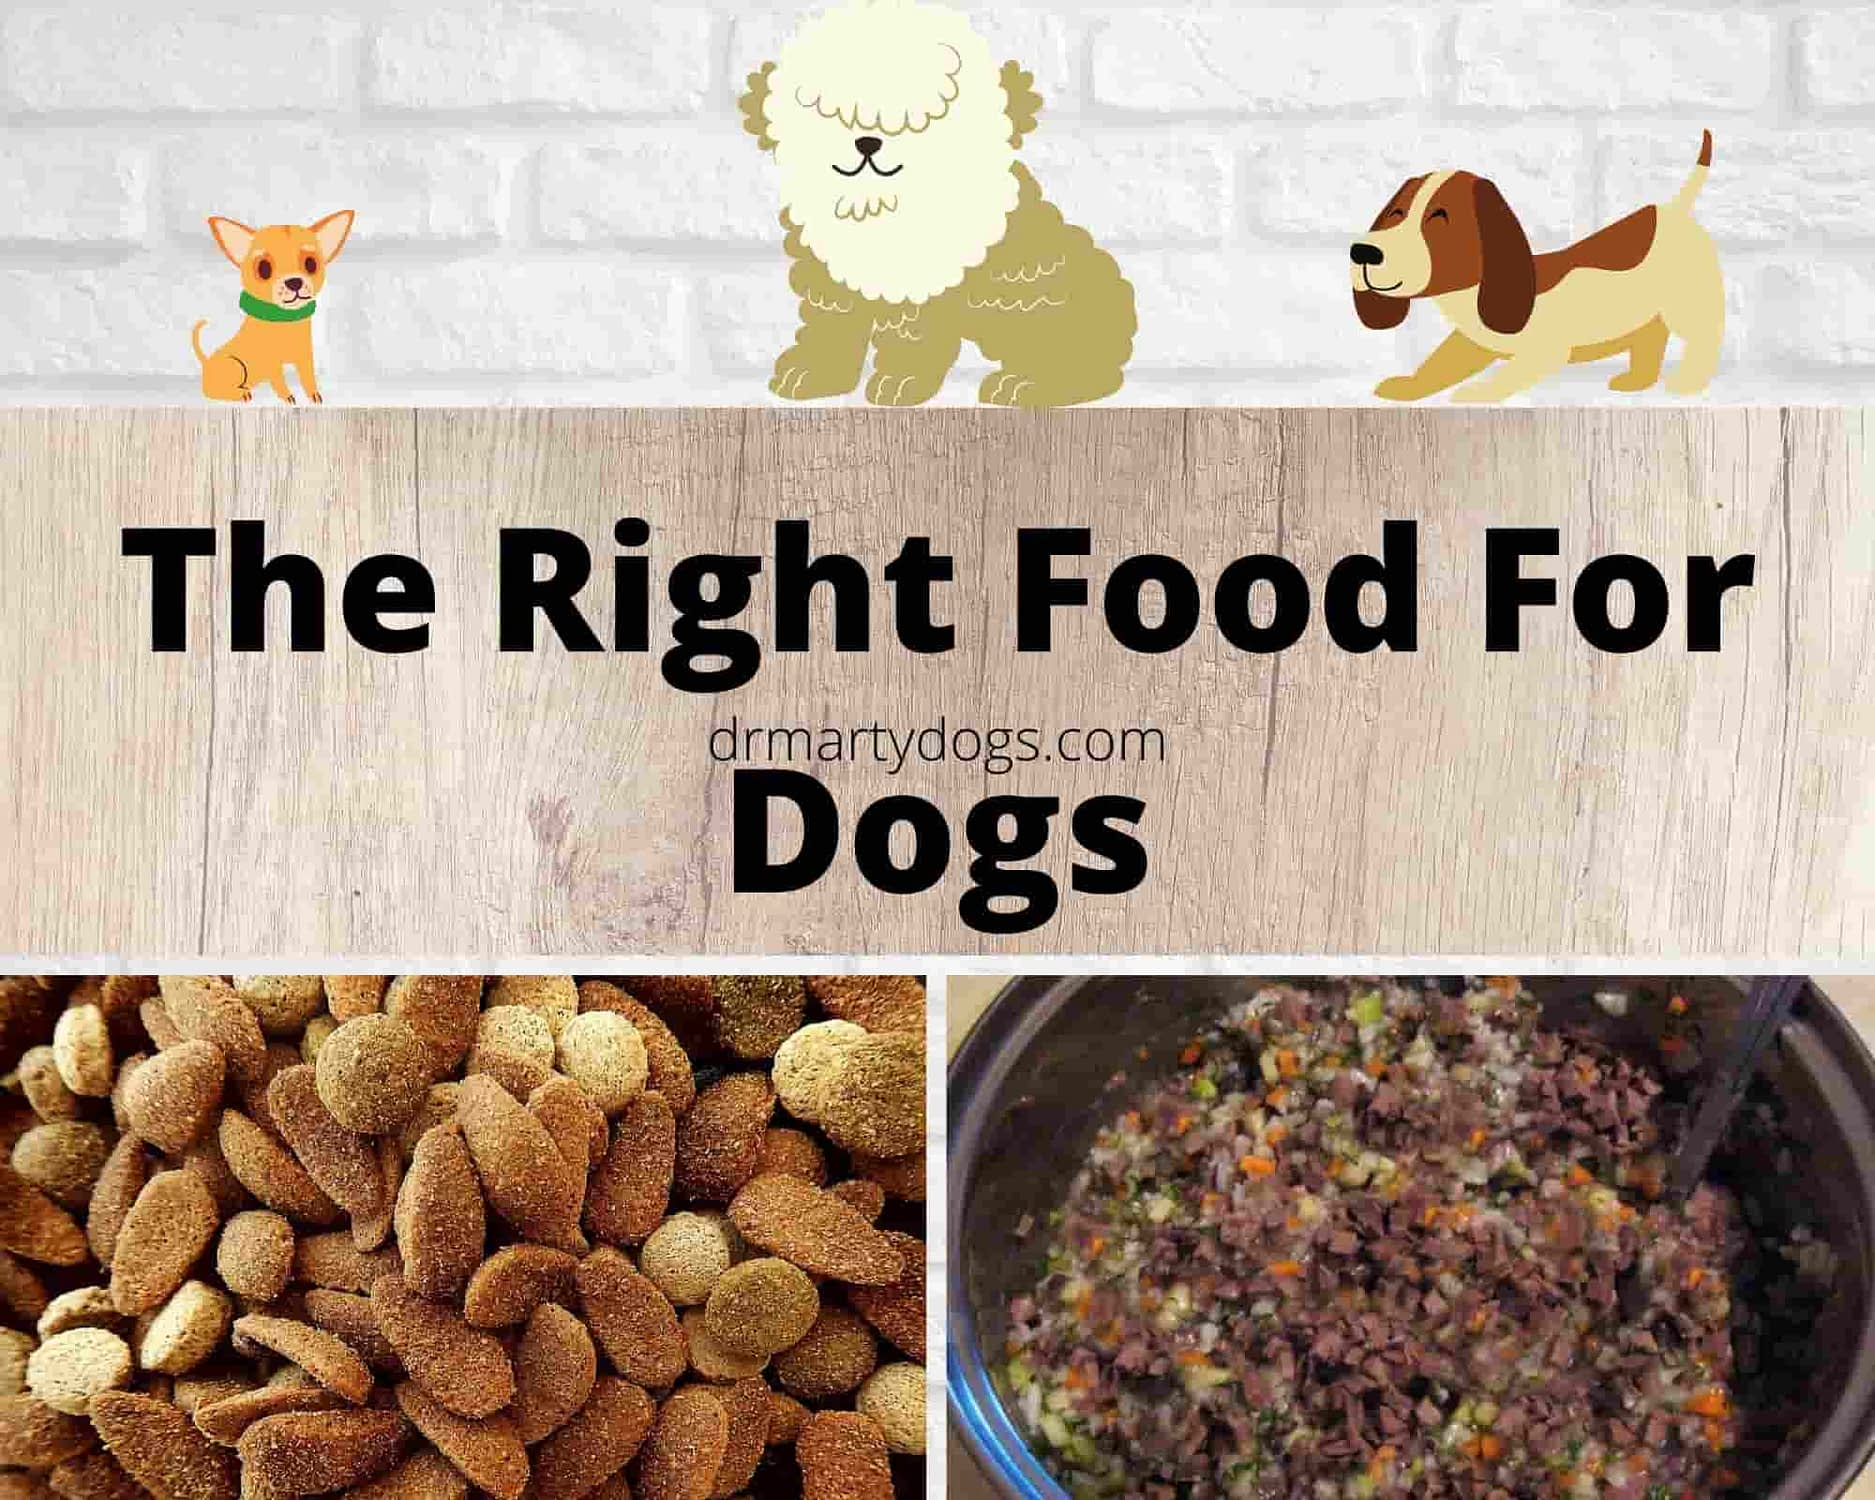 food for dogs of small breeds and food for dogs of large breeds